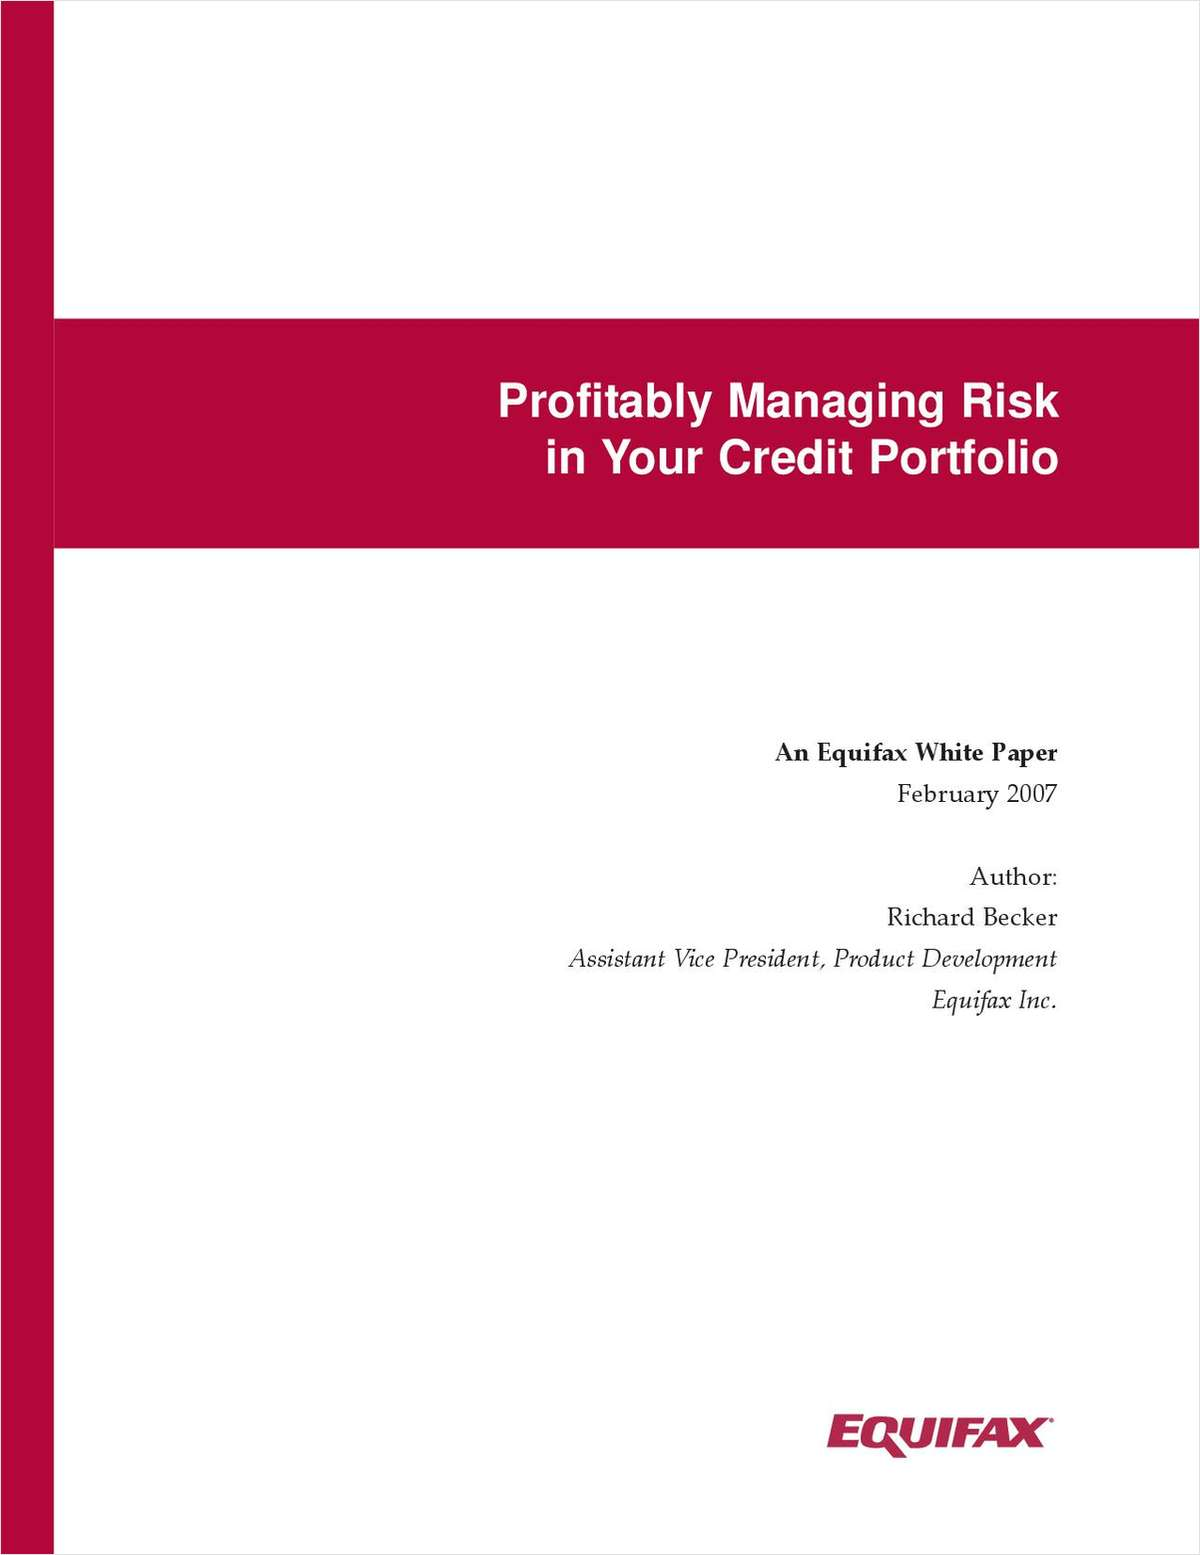 Profitably Managing Risk in Your Credit Portfolio